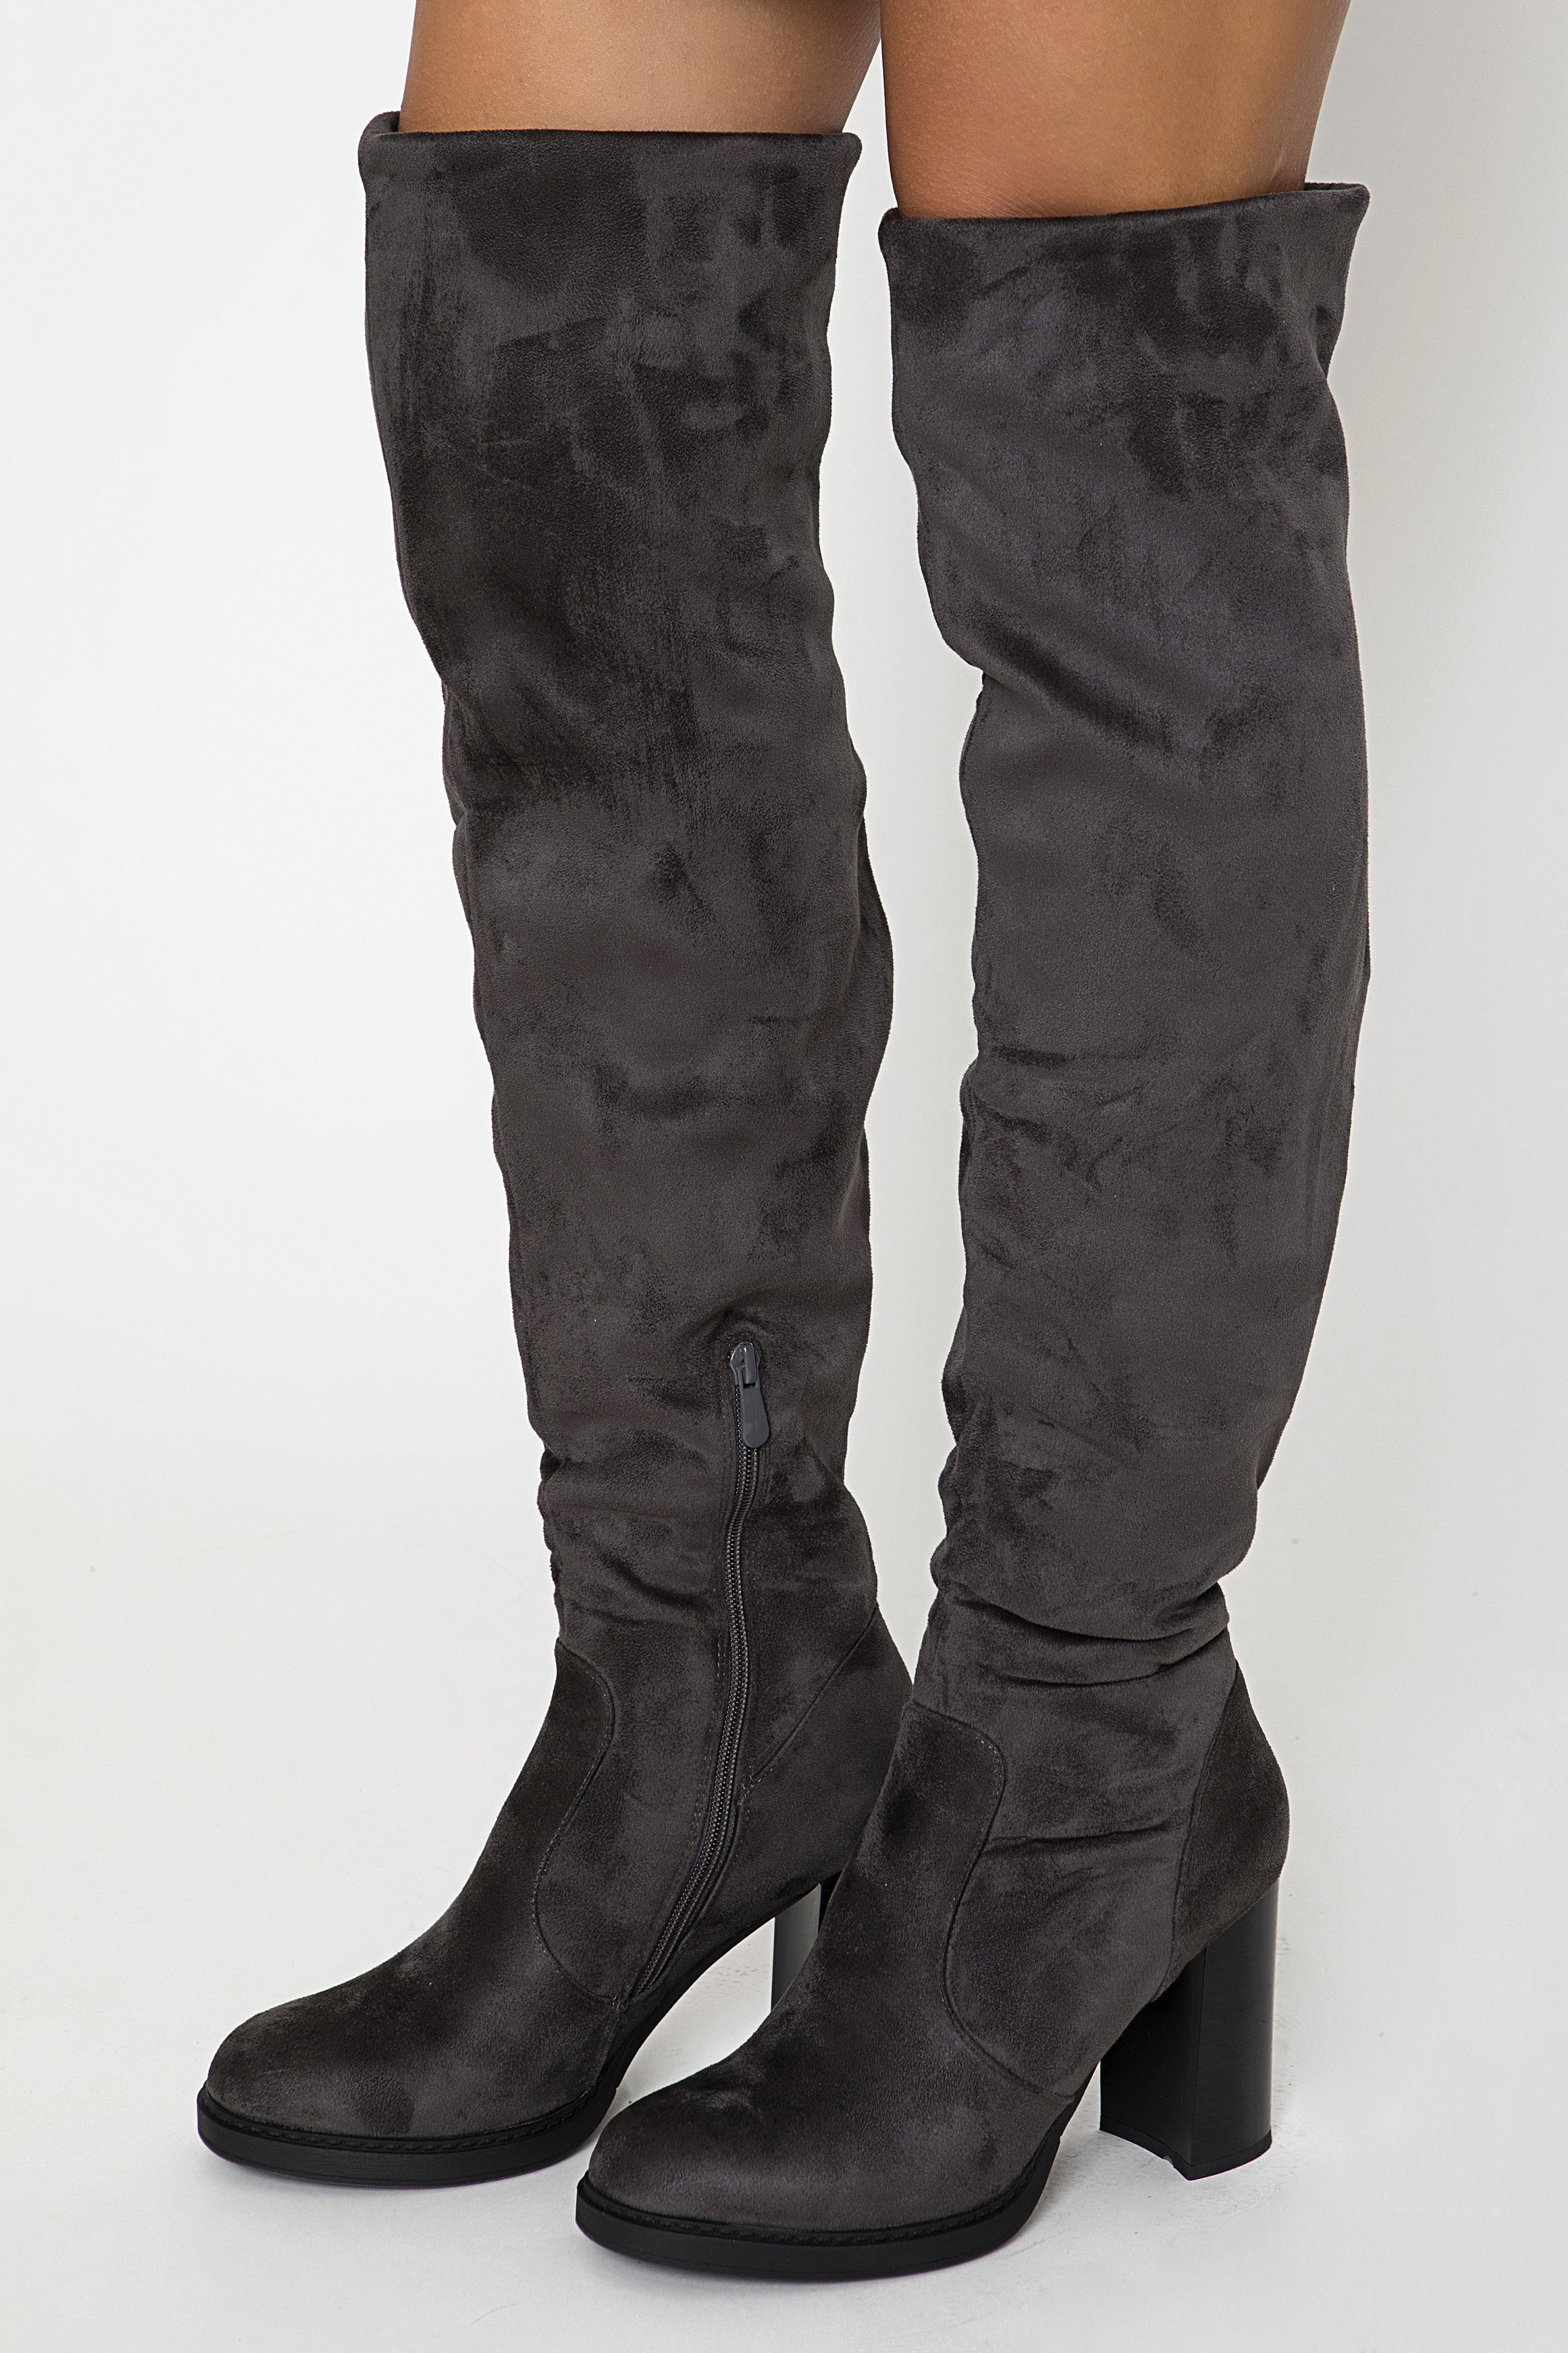 OVER THE KNEE BOOTS - Γκρι shoes   heels